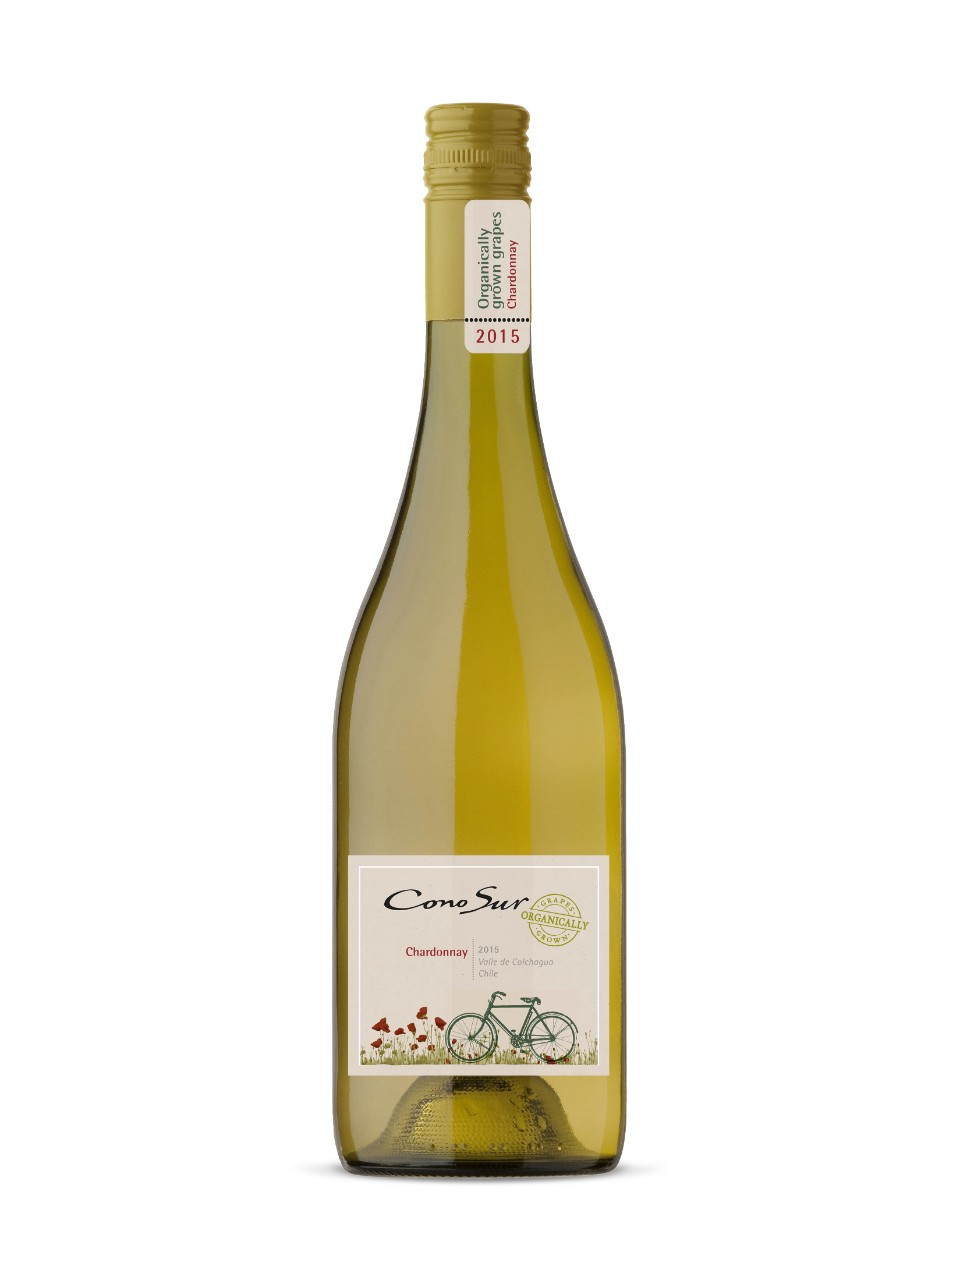 Image for Cono Sur Chardonnay Organic from LCBO